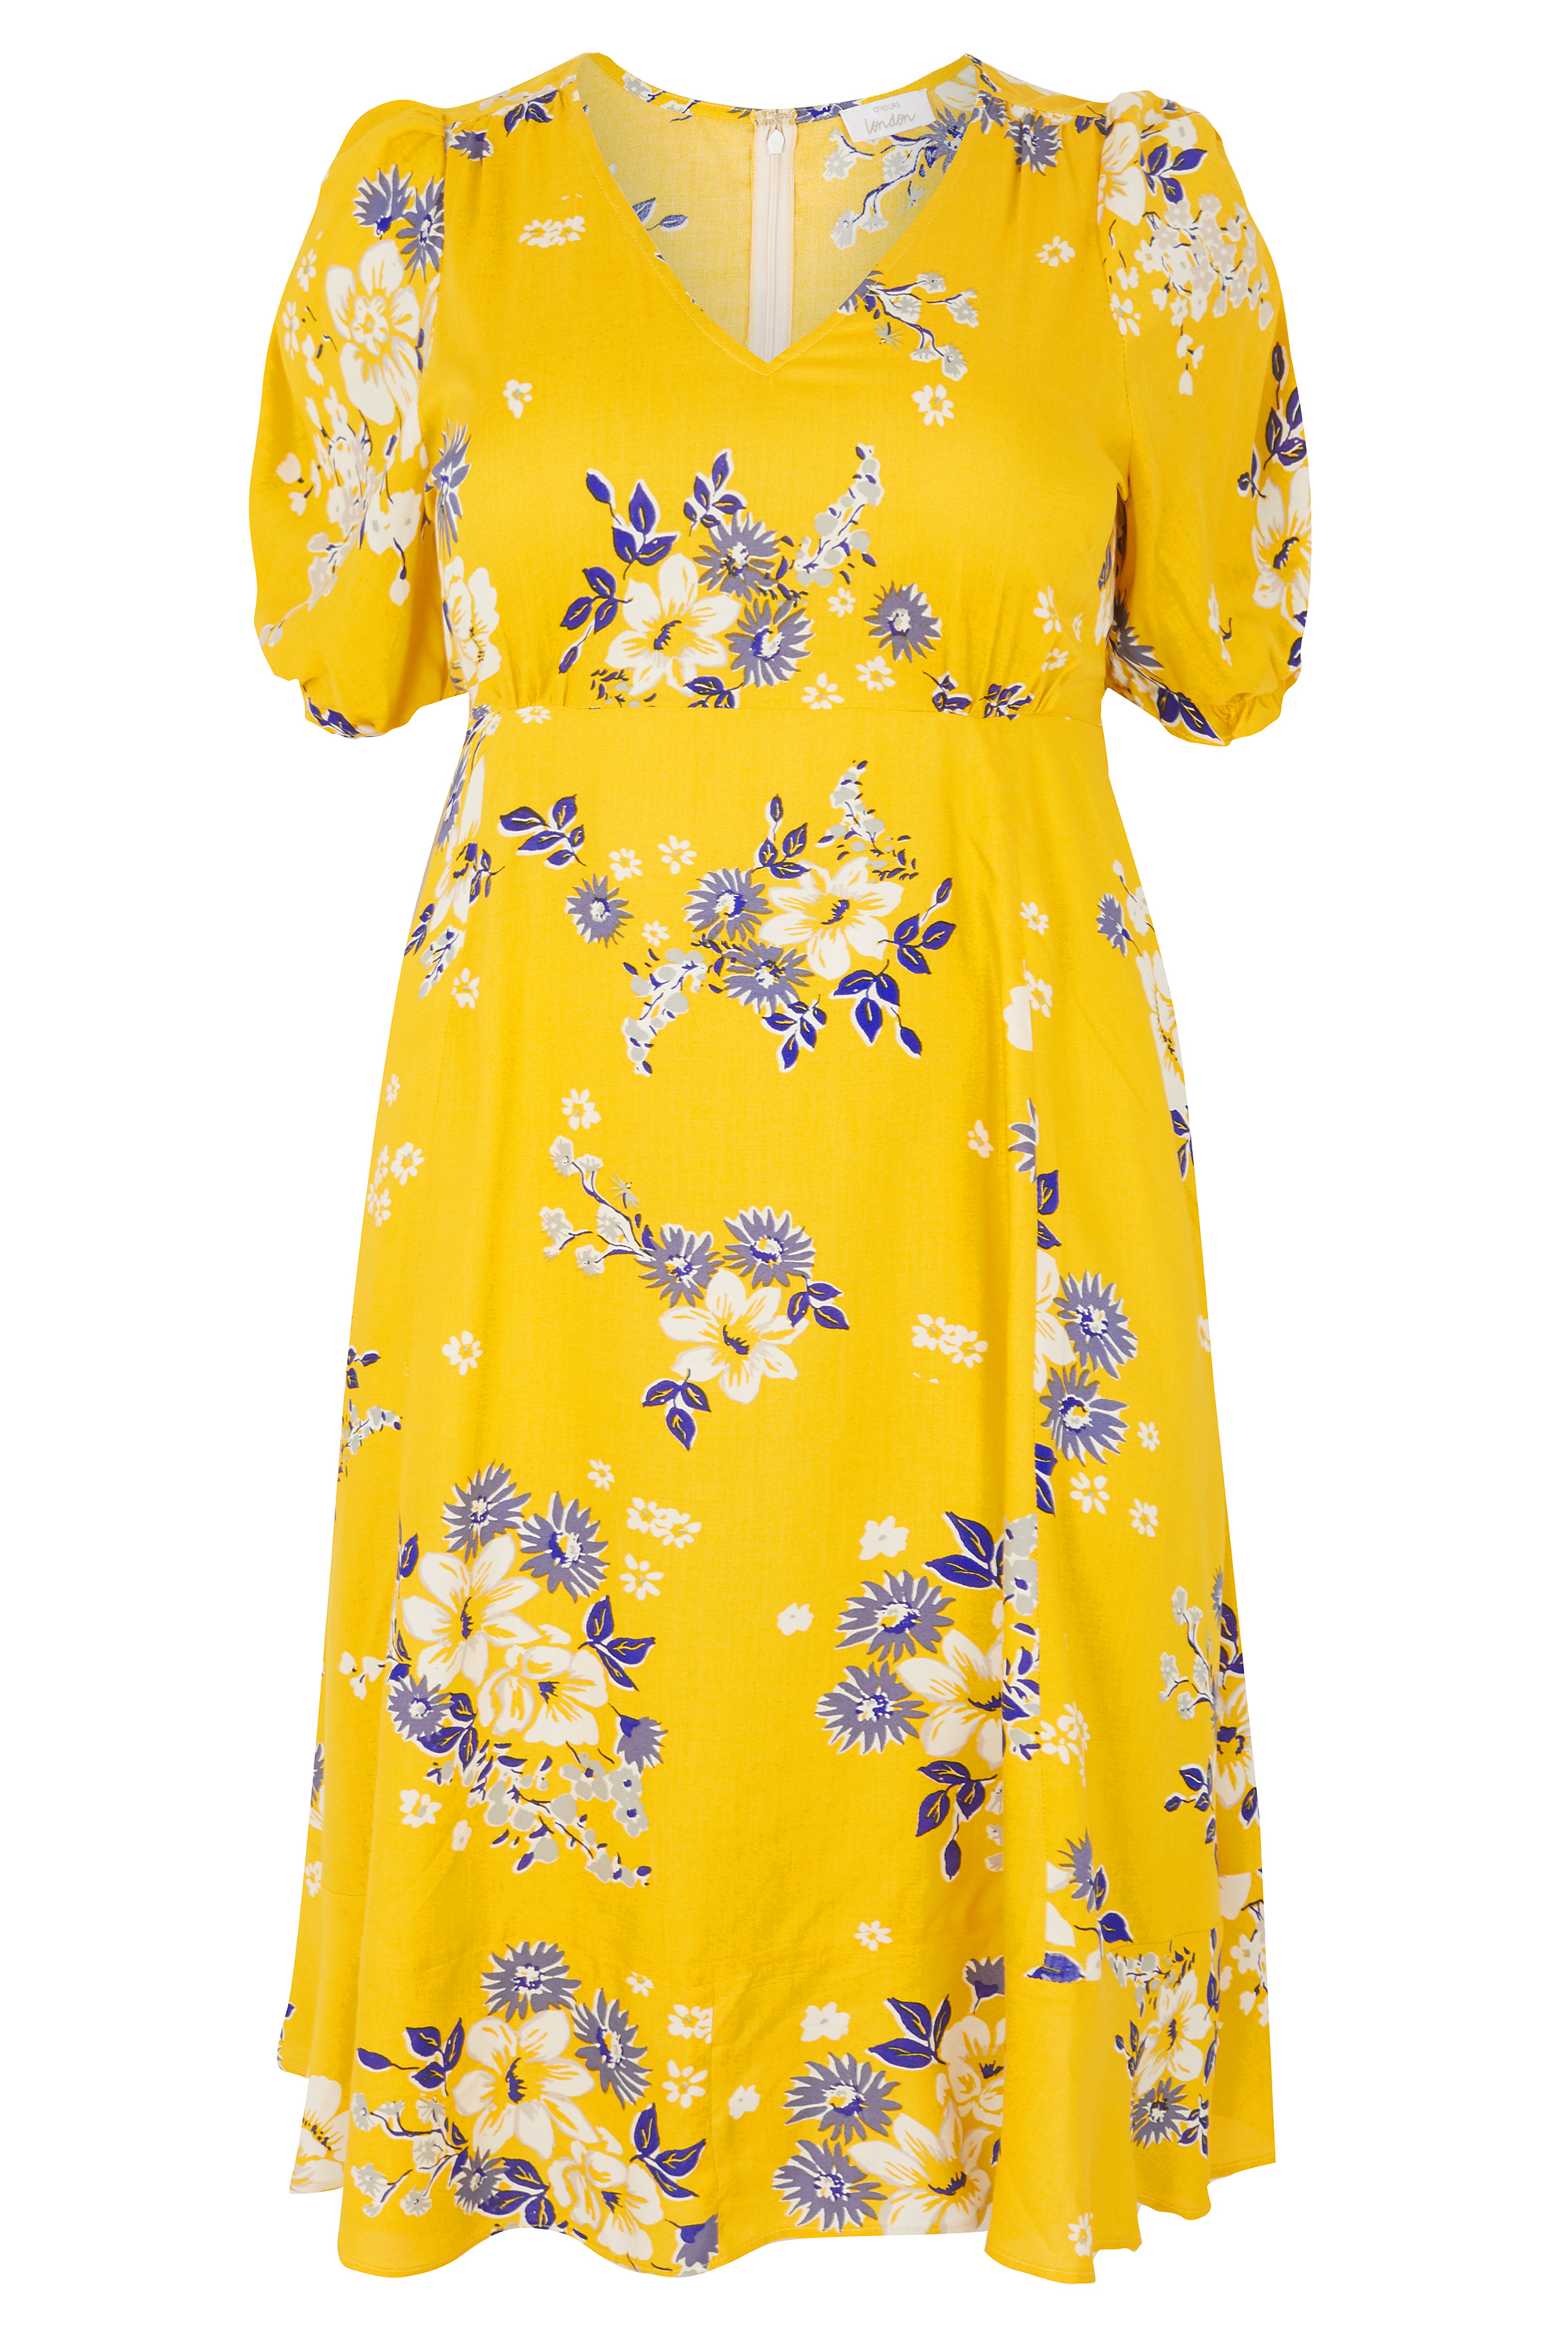 Yours Clothing Yellow Floral Tea Dress